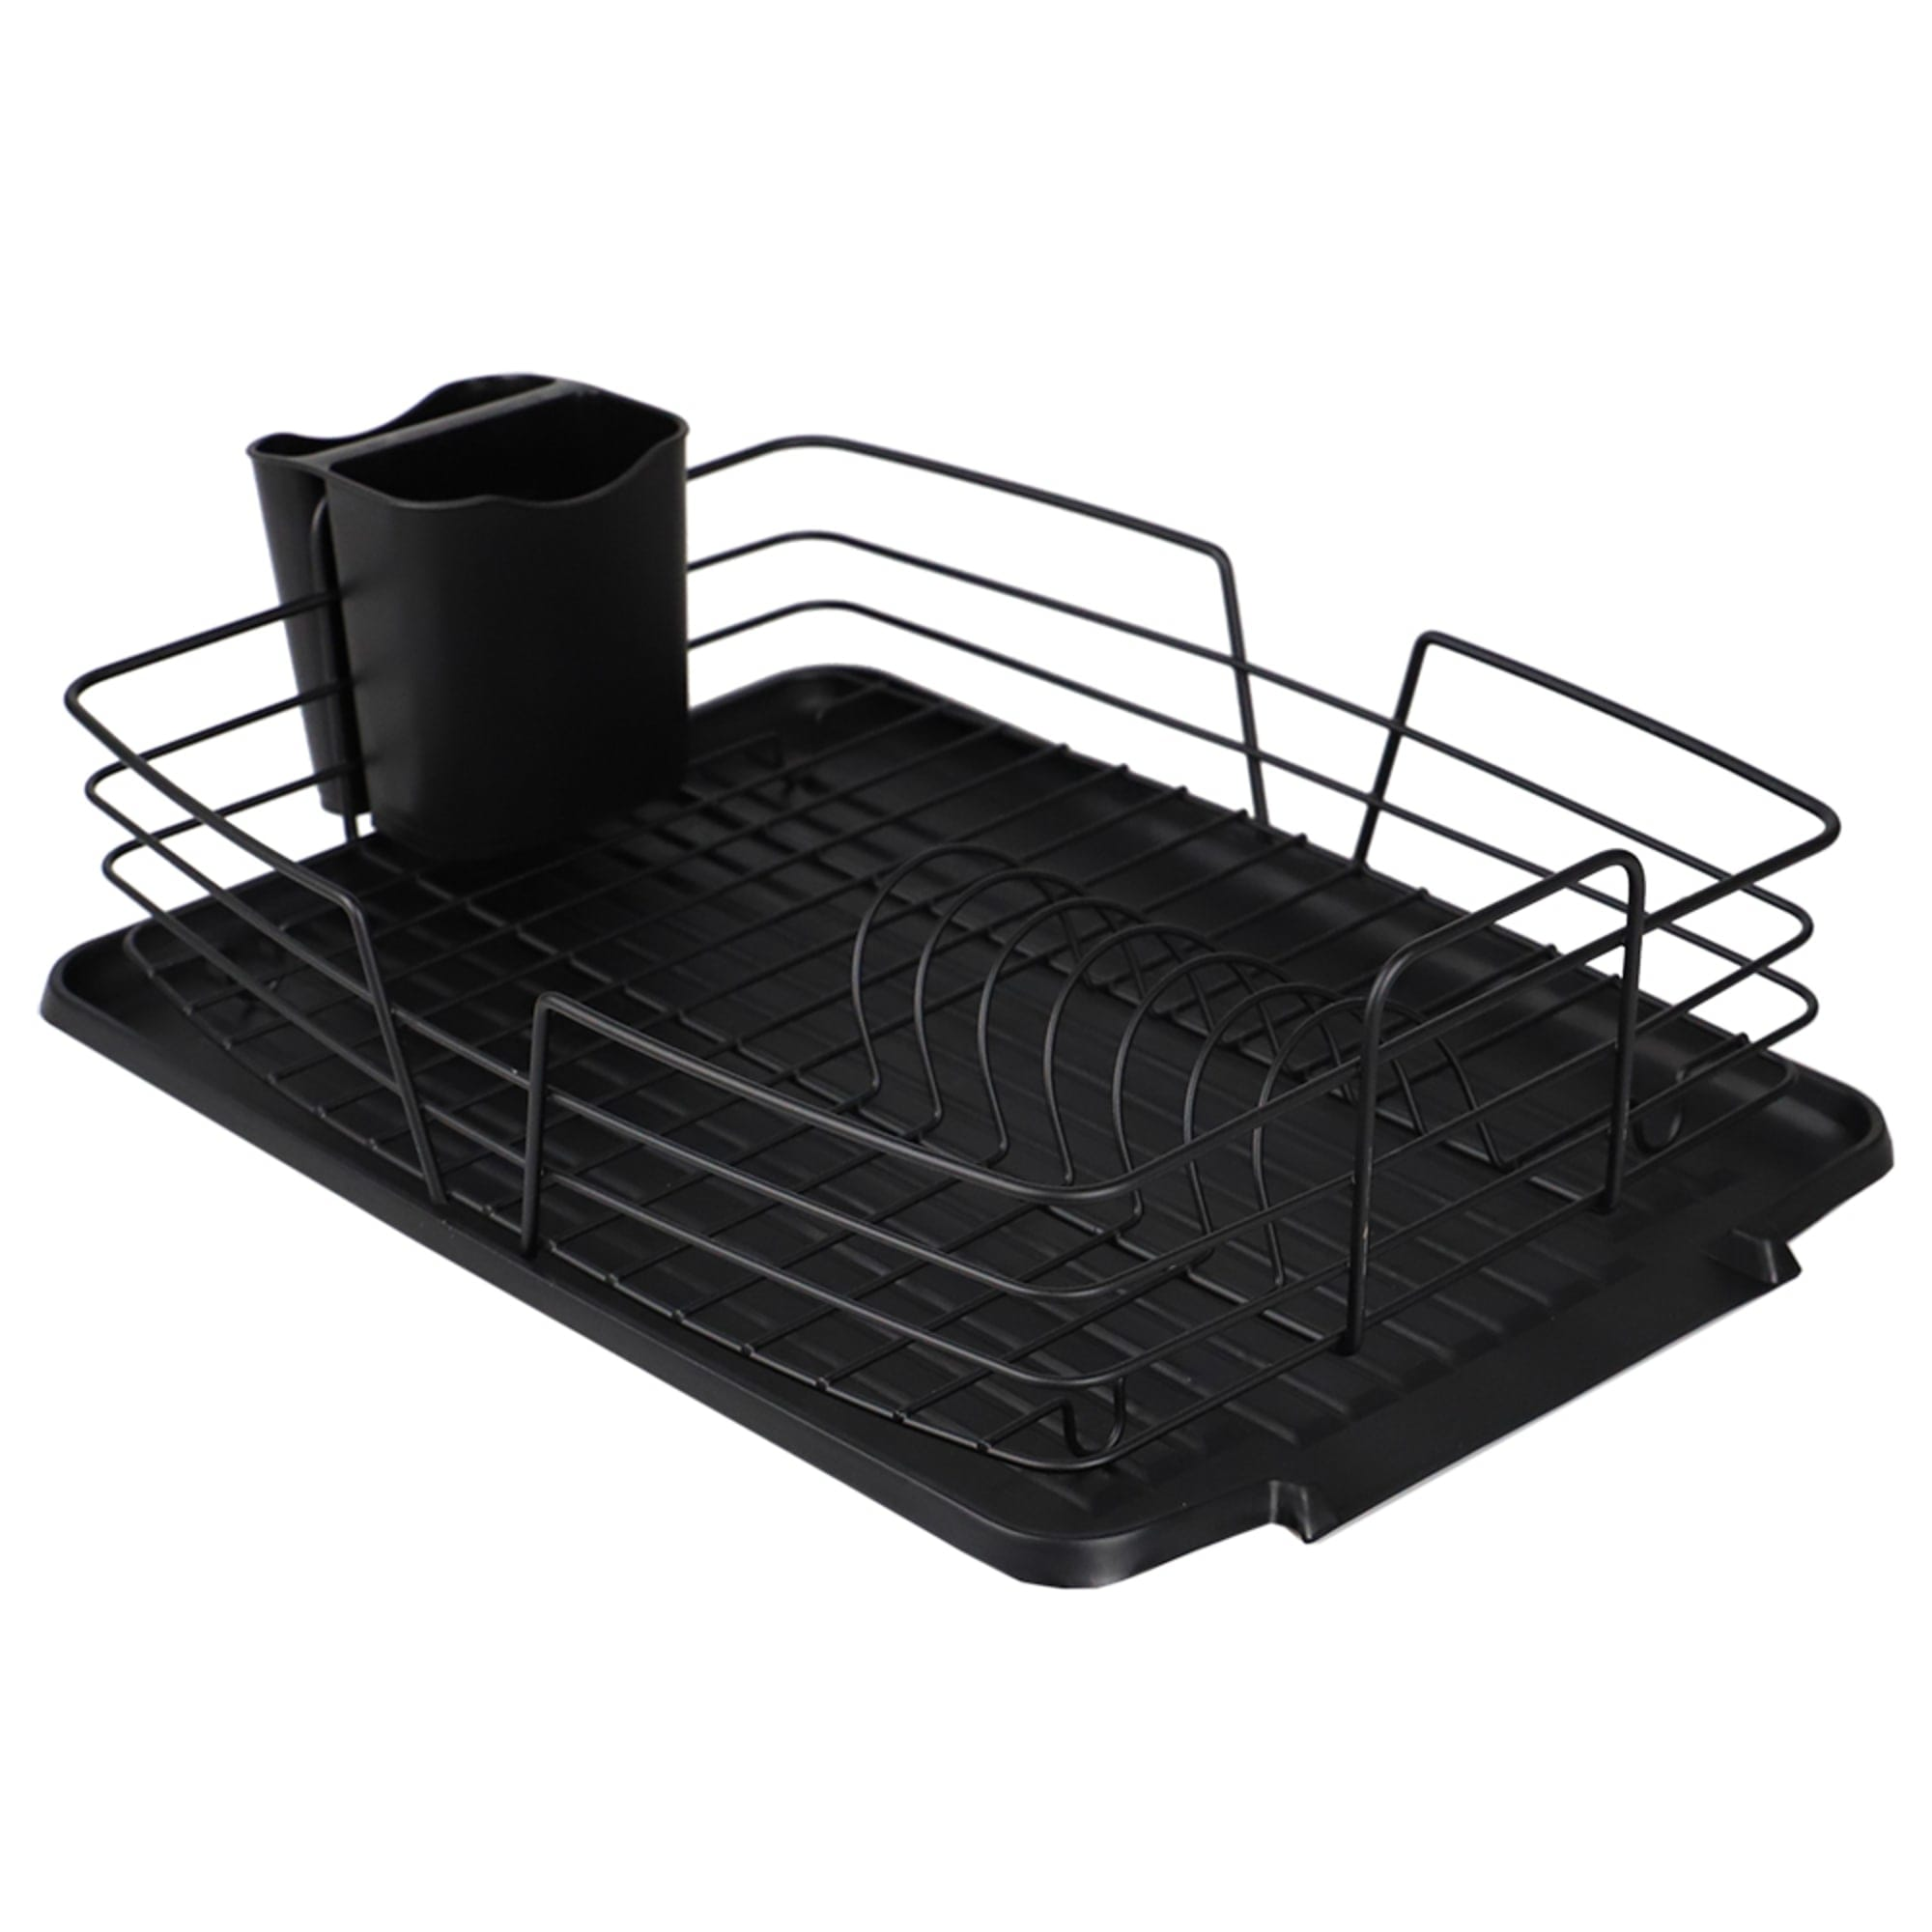 Michael Graves Design Deluxe Dish Rack with Black Finish Wire and Removable Dual Compartment Utensil Holder, Black